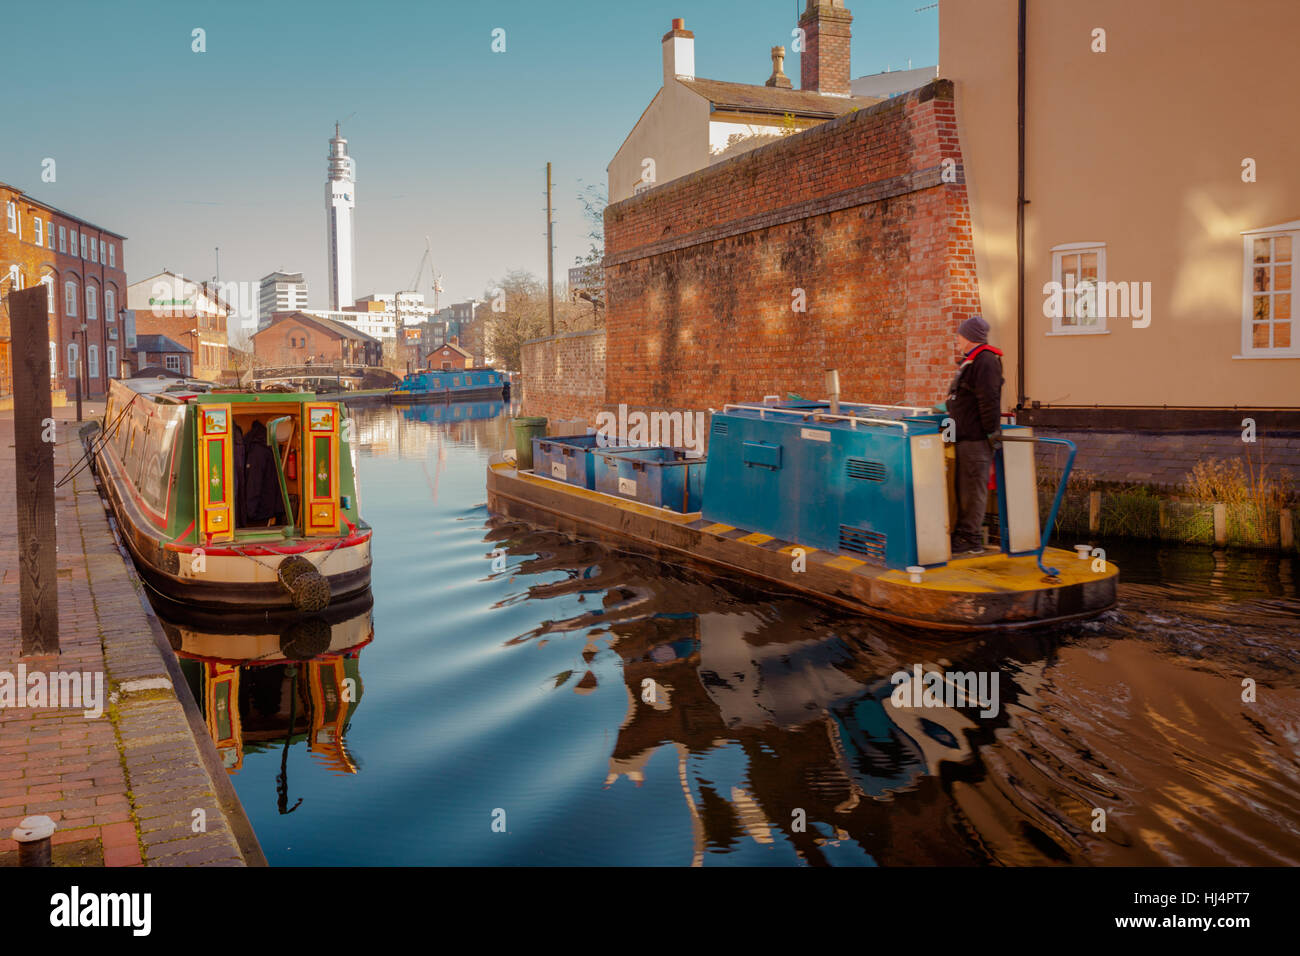 Birmingham Canal Network main line canal, Birmingham city centre with a narrowboat in the middle forground, UK Stock Photo